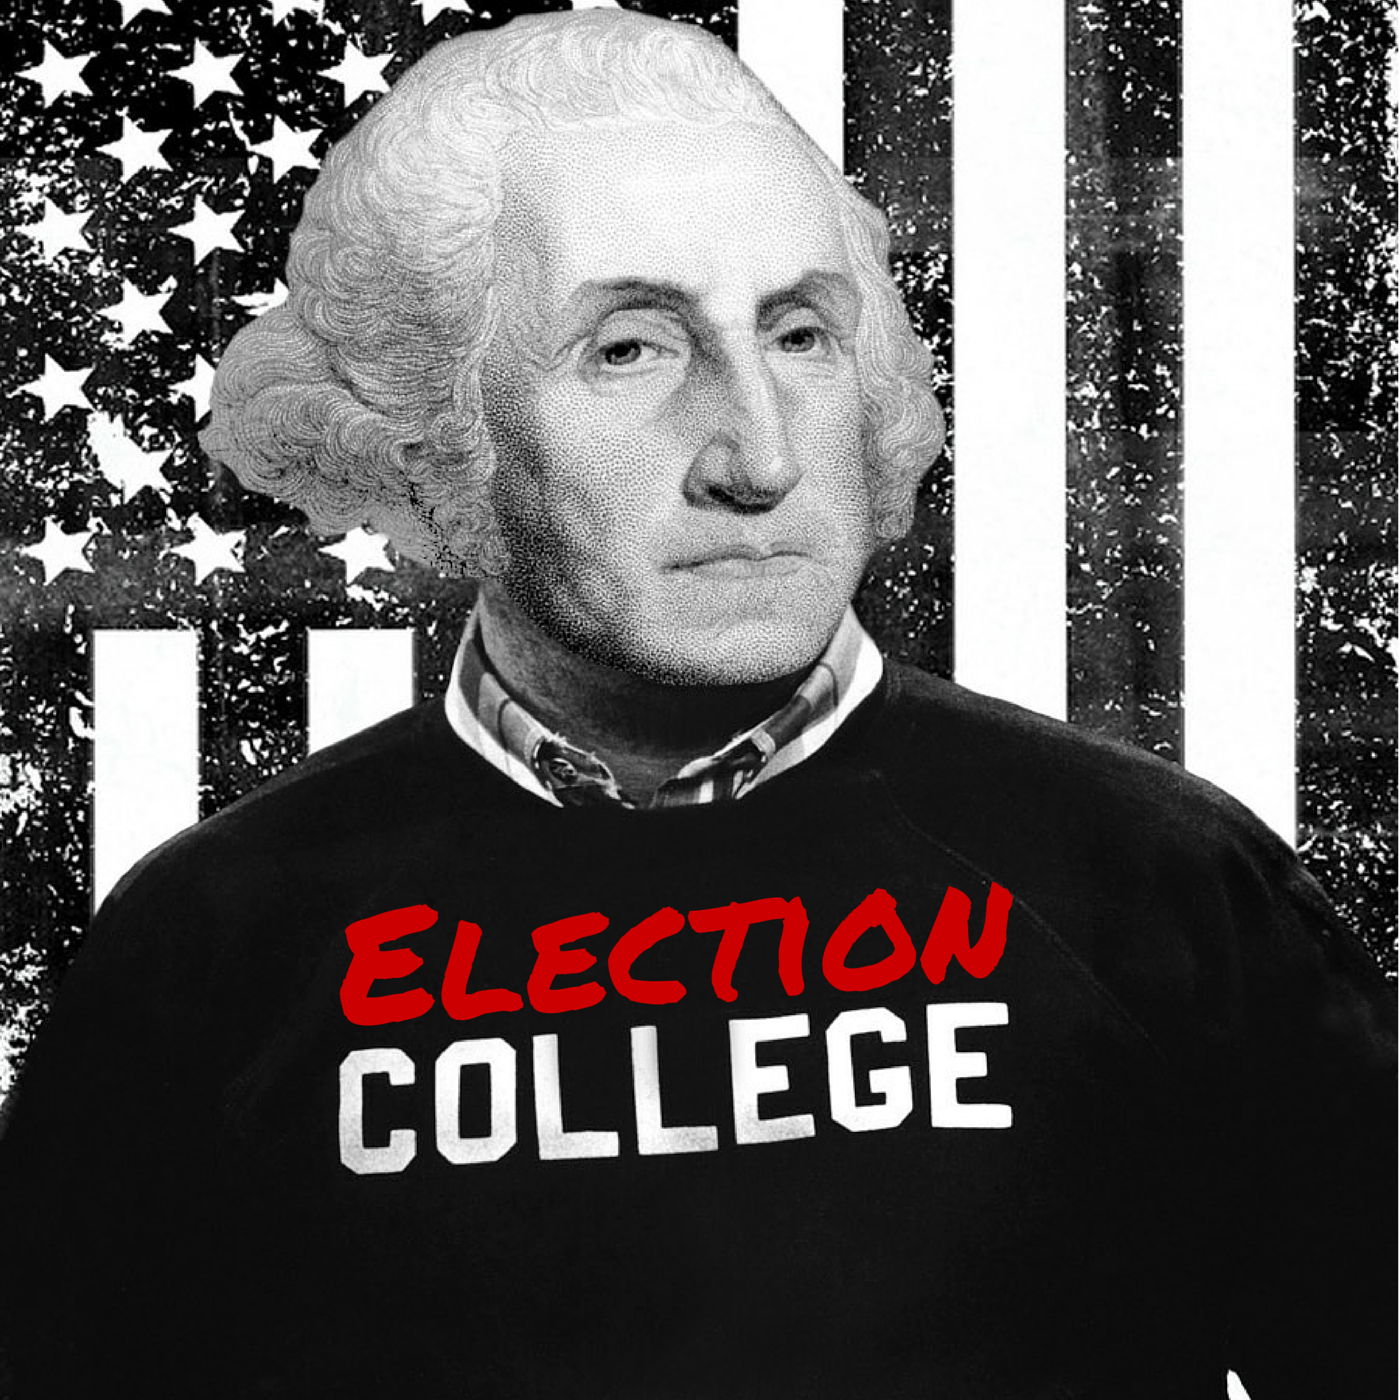 John C. Breckinridge - Part 1 | Episode #208 | Election College: United States Presidential Election History